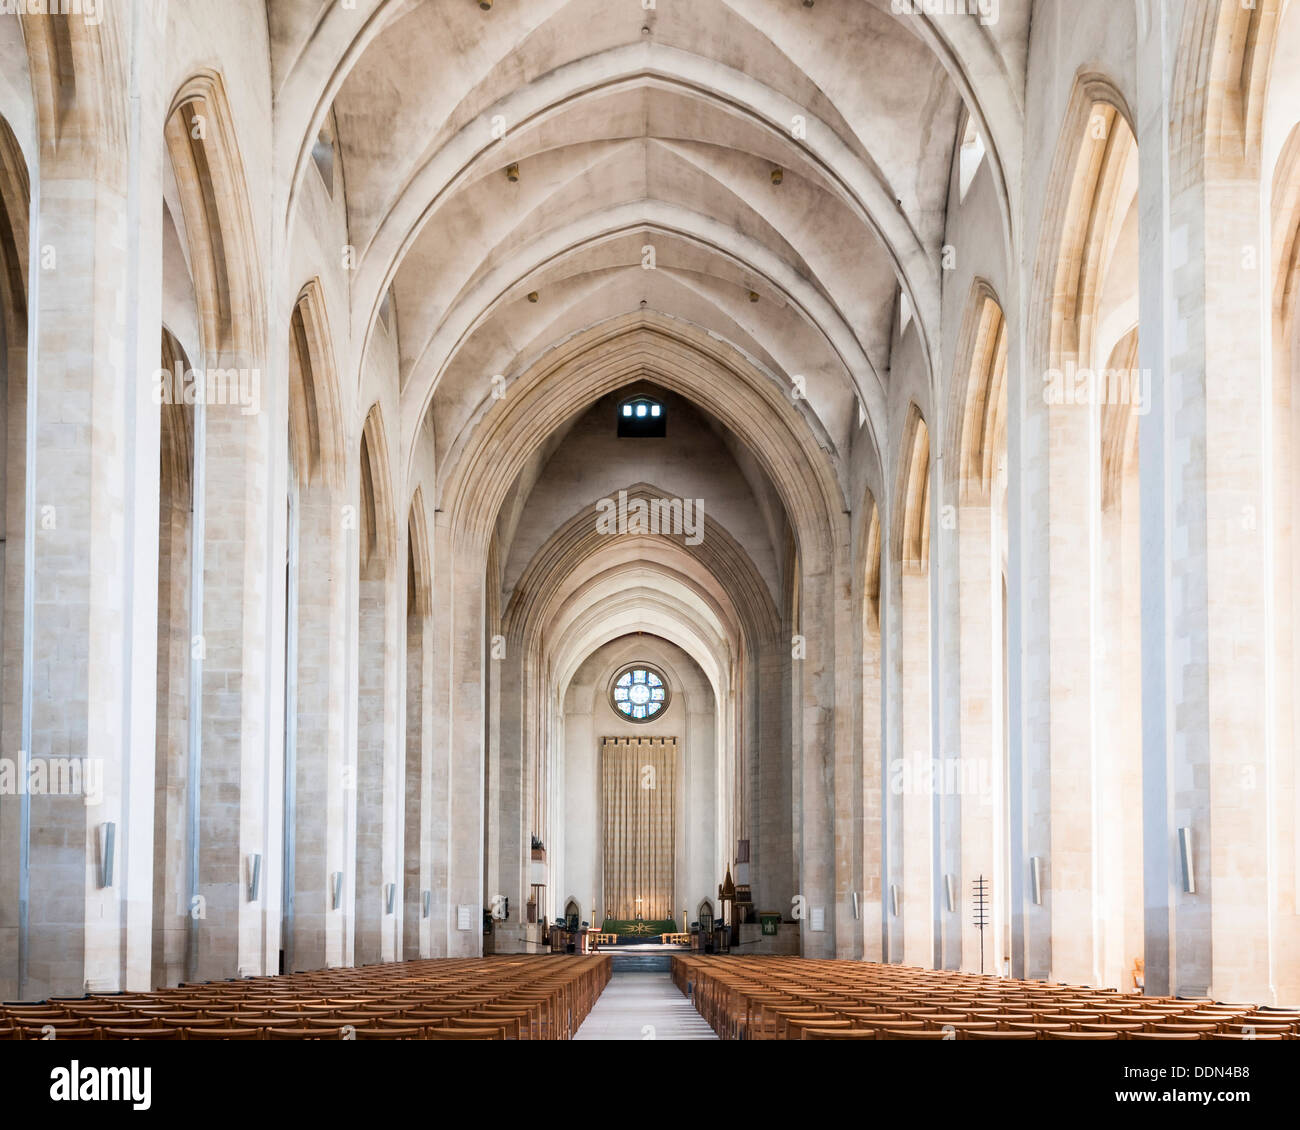 Guildford Cathedral, Guildford, United Kingdom. Architect: Sir Edward Maufe, 1961. View of main hall. Stock Photo